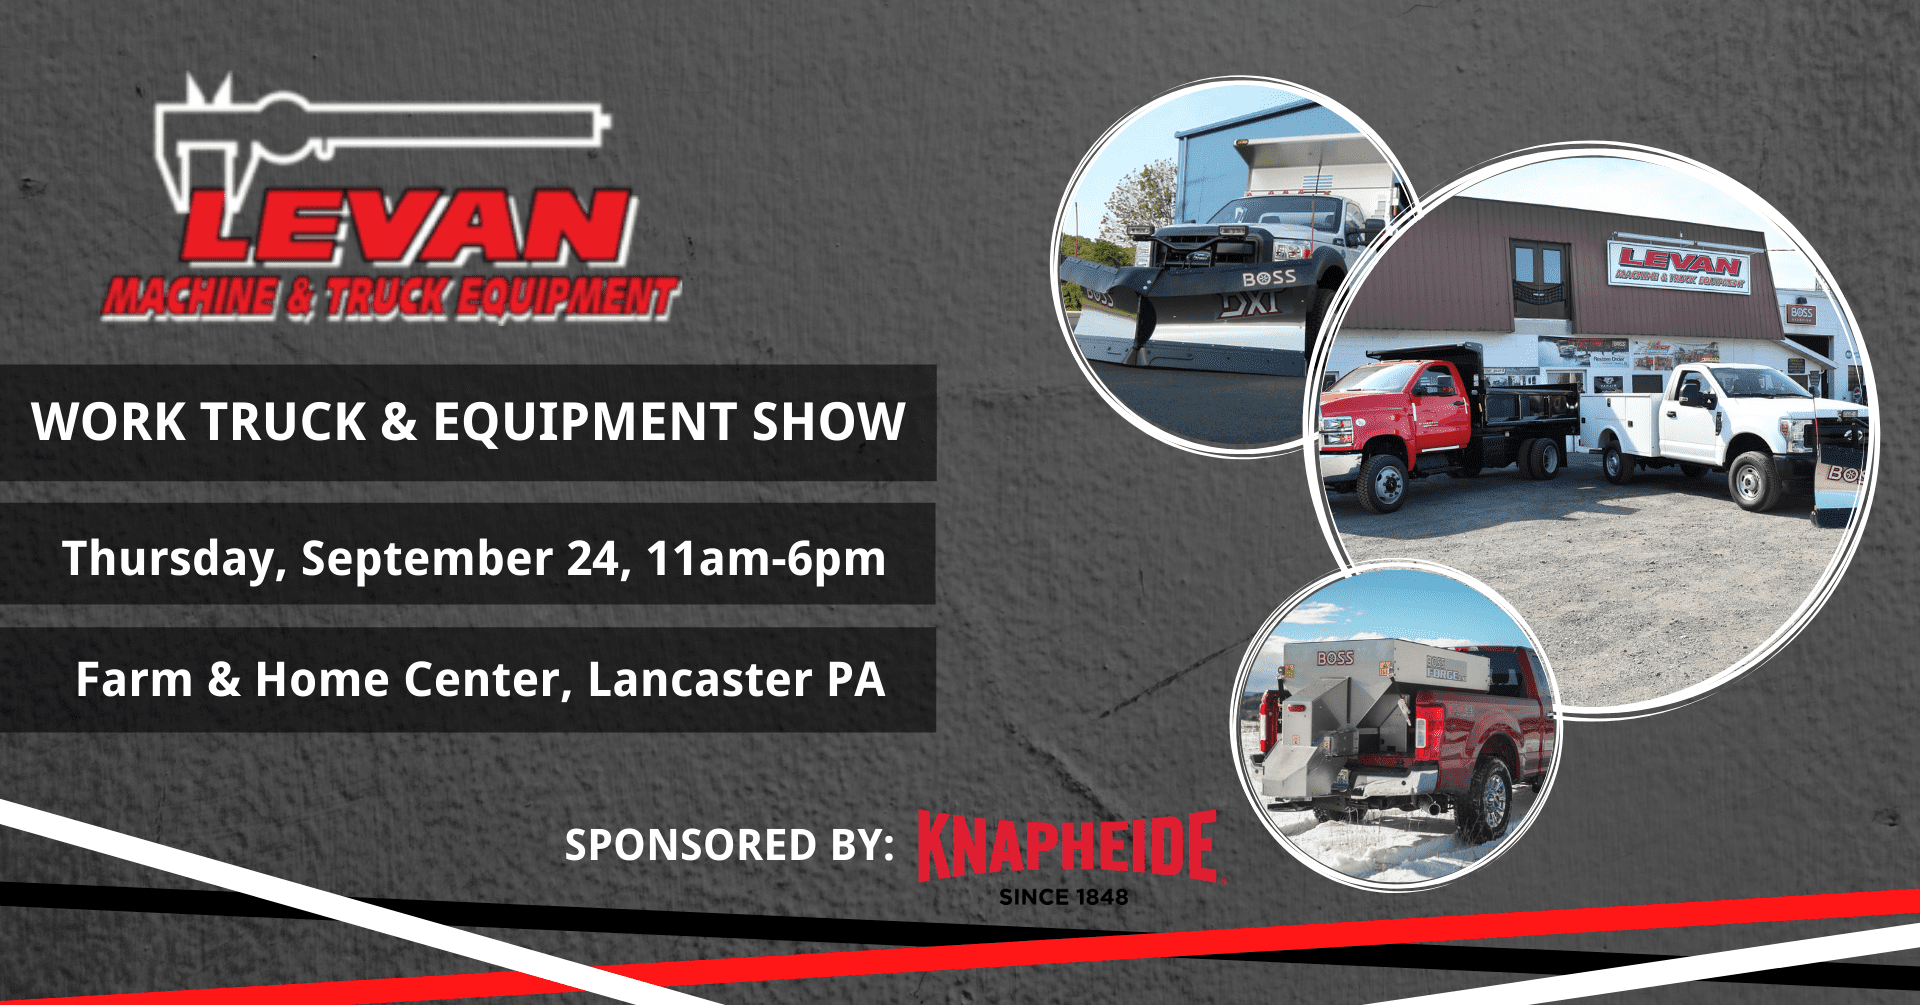 Levan Machine & Truck Equipment Work Truck & Equipment Show - Thursday, September 24, 11am-6pm - Farm & Home Center, Lancaster, PA - Sponsored by Knapheide